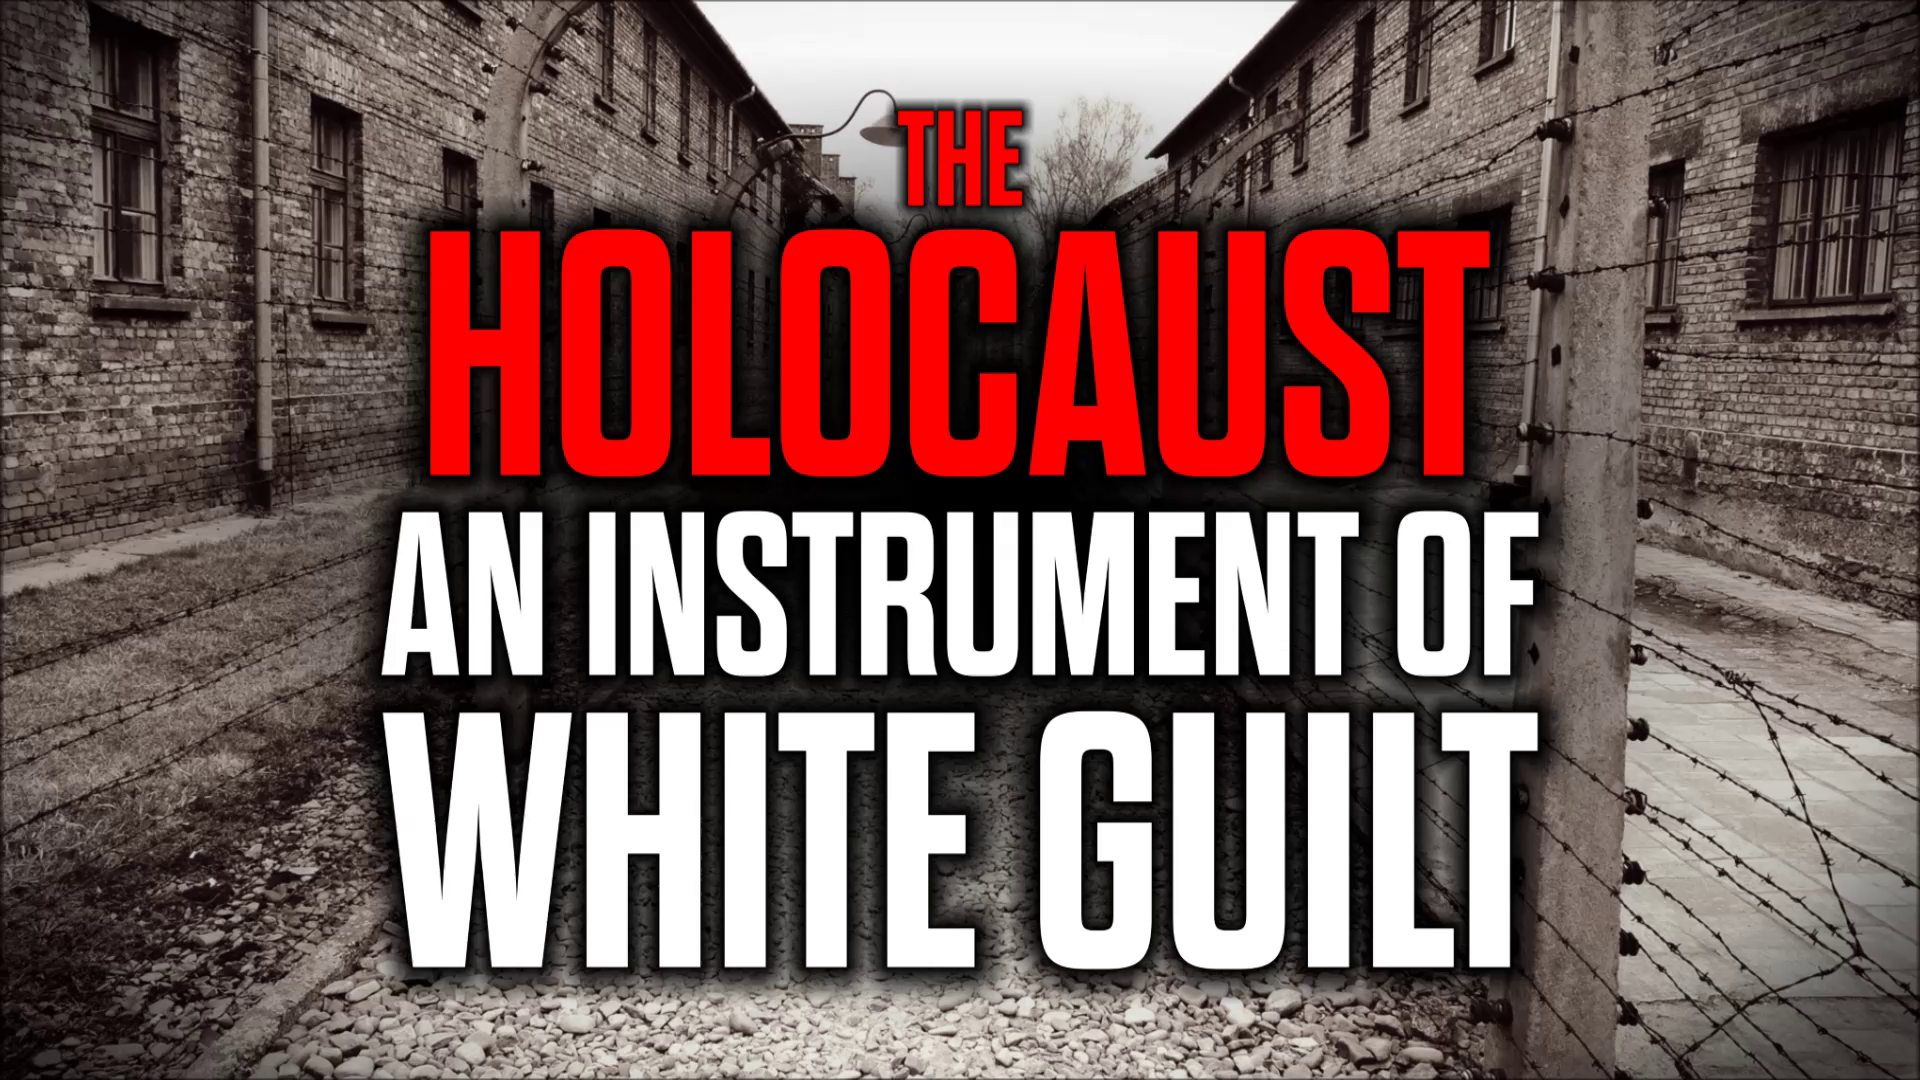 The Holocaust -  An Instrument of White Guilt